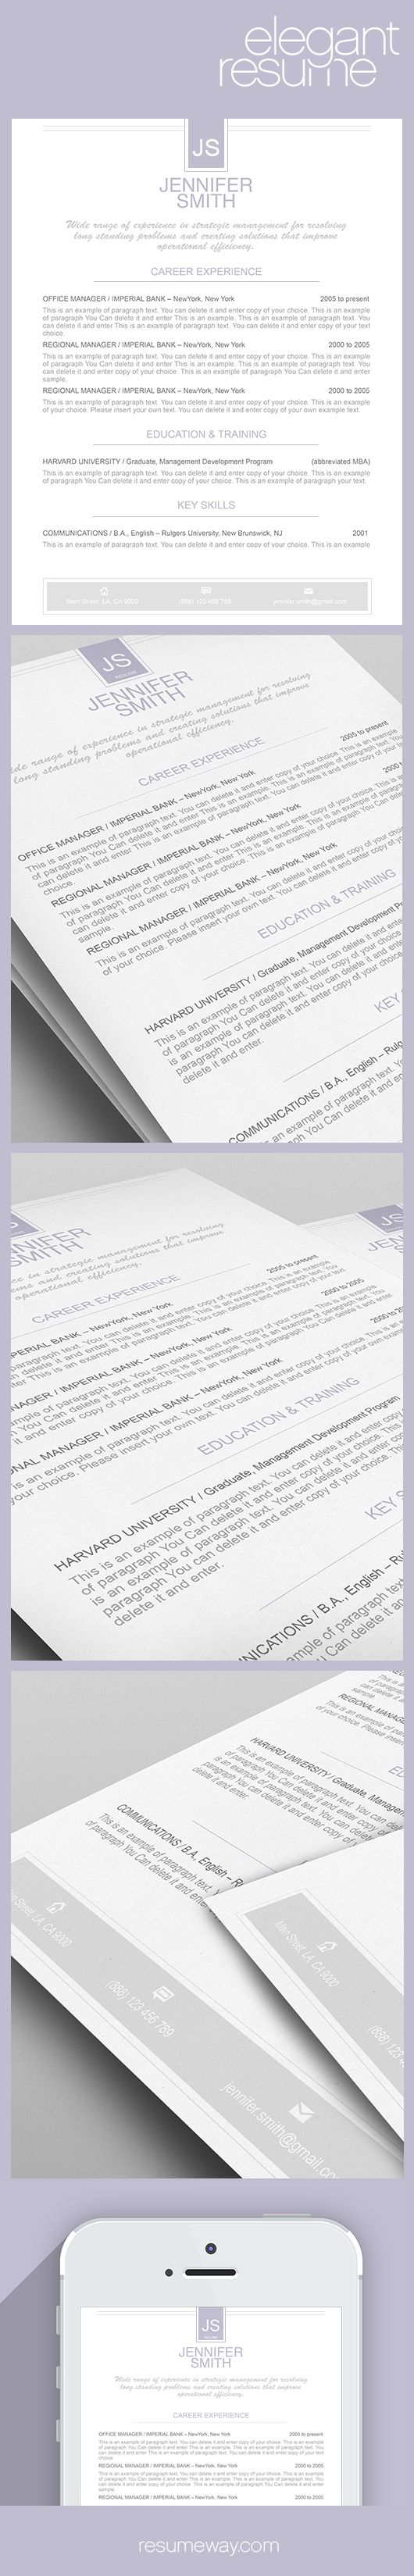 elegant resume template 110460 premium line of resume cover letter templates easy edit with ms word apple pages good idea selected by